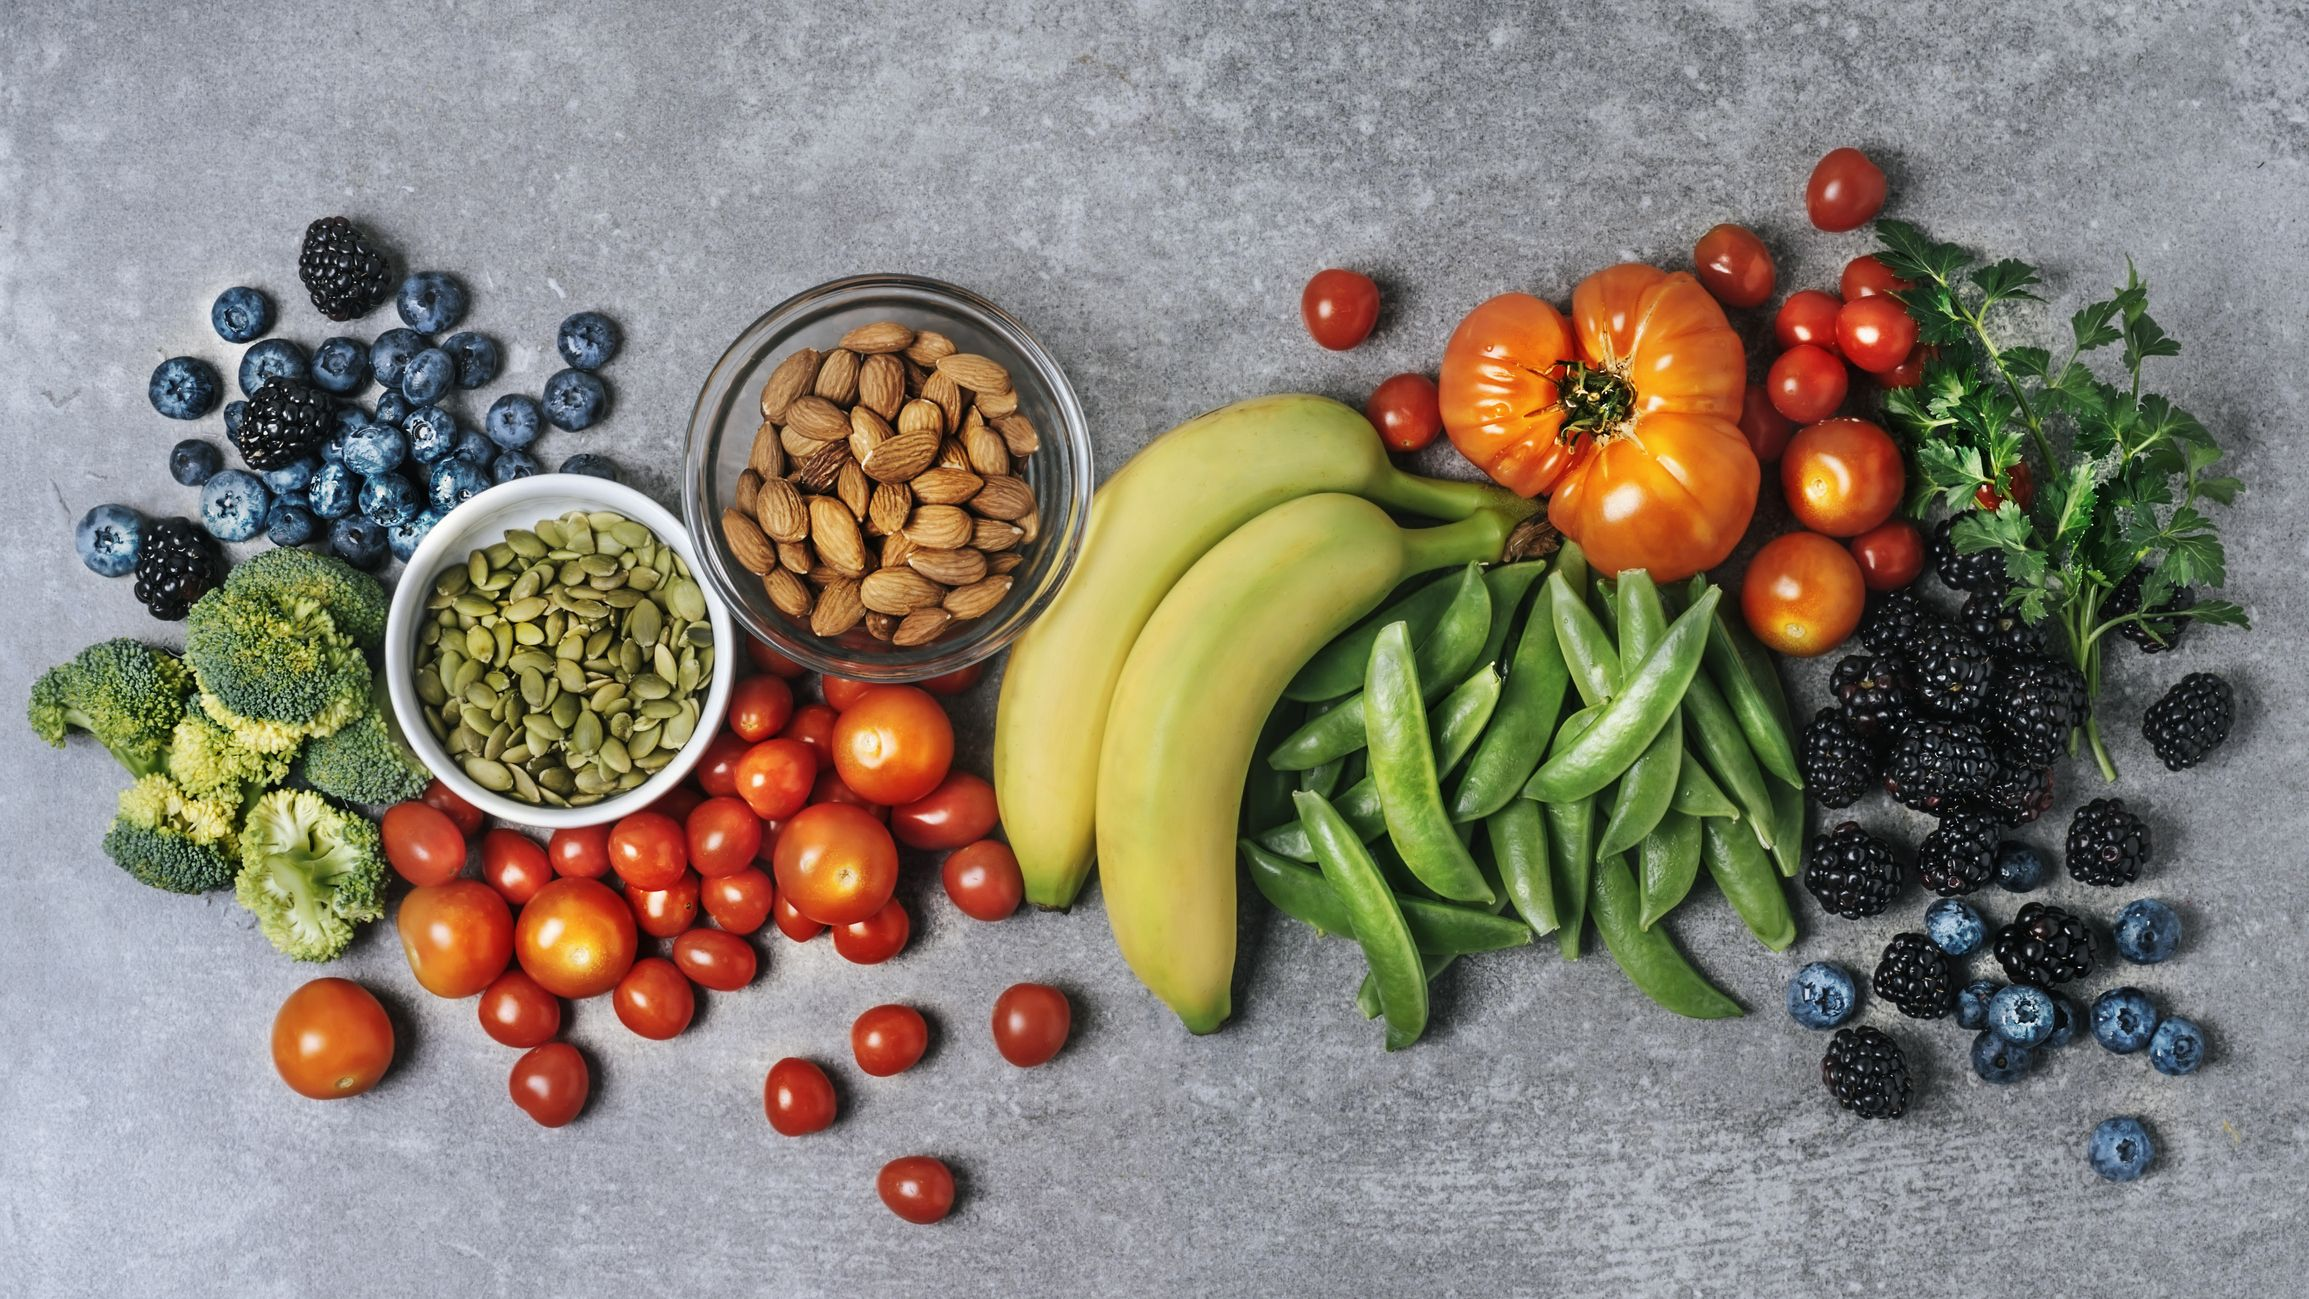 7 Anti-Inflammatory Foods to Add to Your Diet